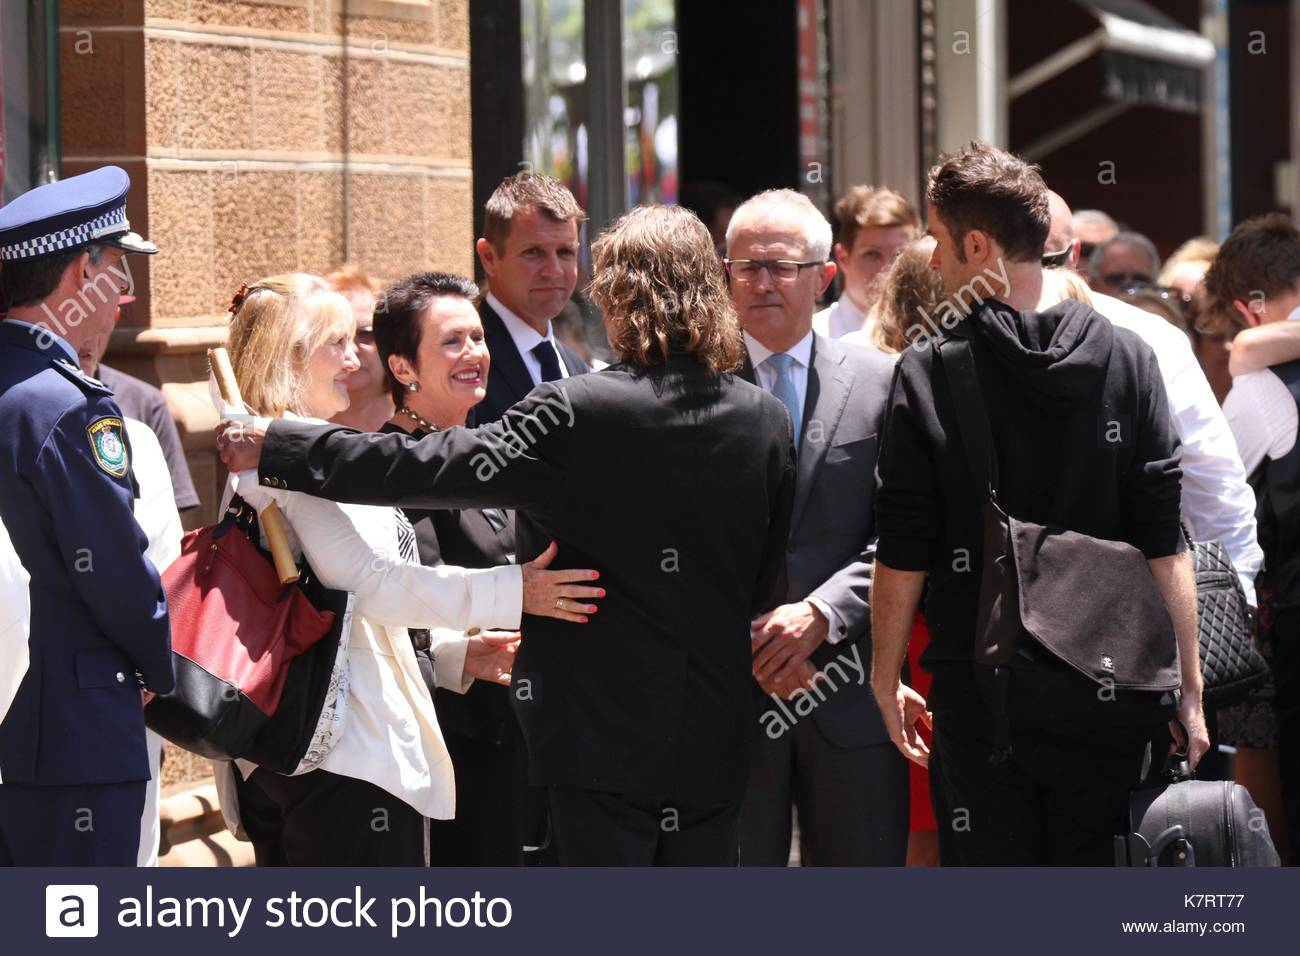 Lord Mayor Clover Moore, NSW Premier Mike Baird and Tori Johnson's father Ken Johnson. VIP dignitaries and family - Stock Image